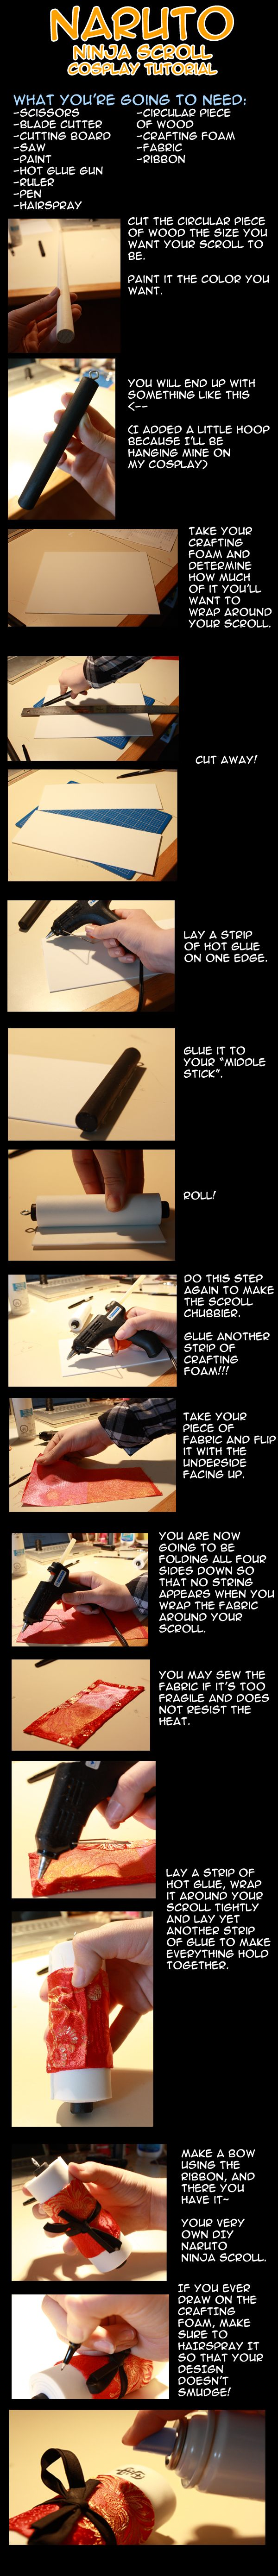 Naruto Ninja Scroll Tutorial by LiquidNytrogen.deviantart.com on @deviantART